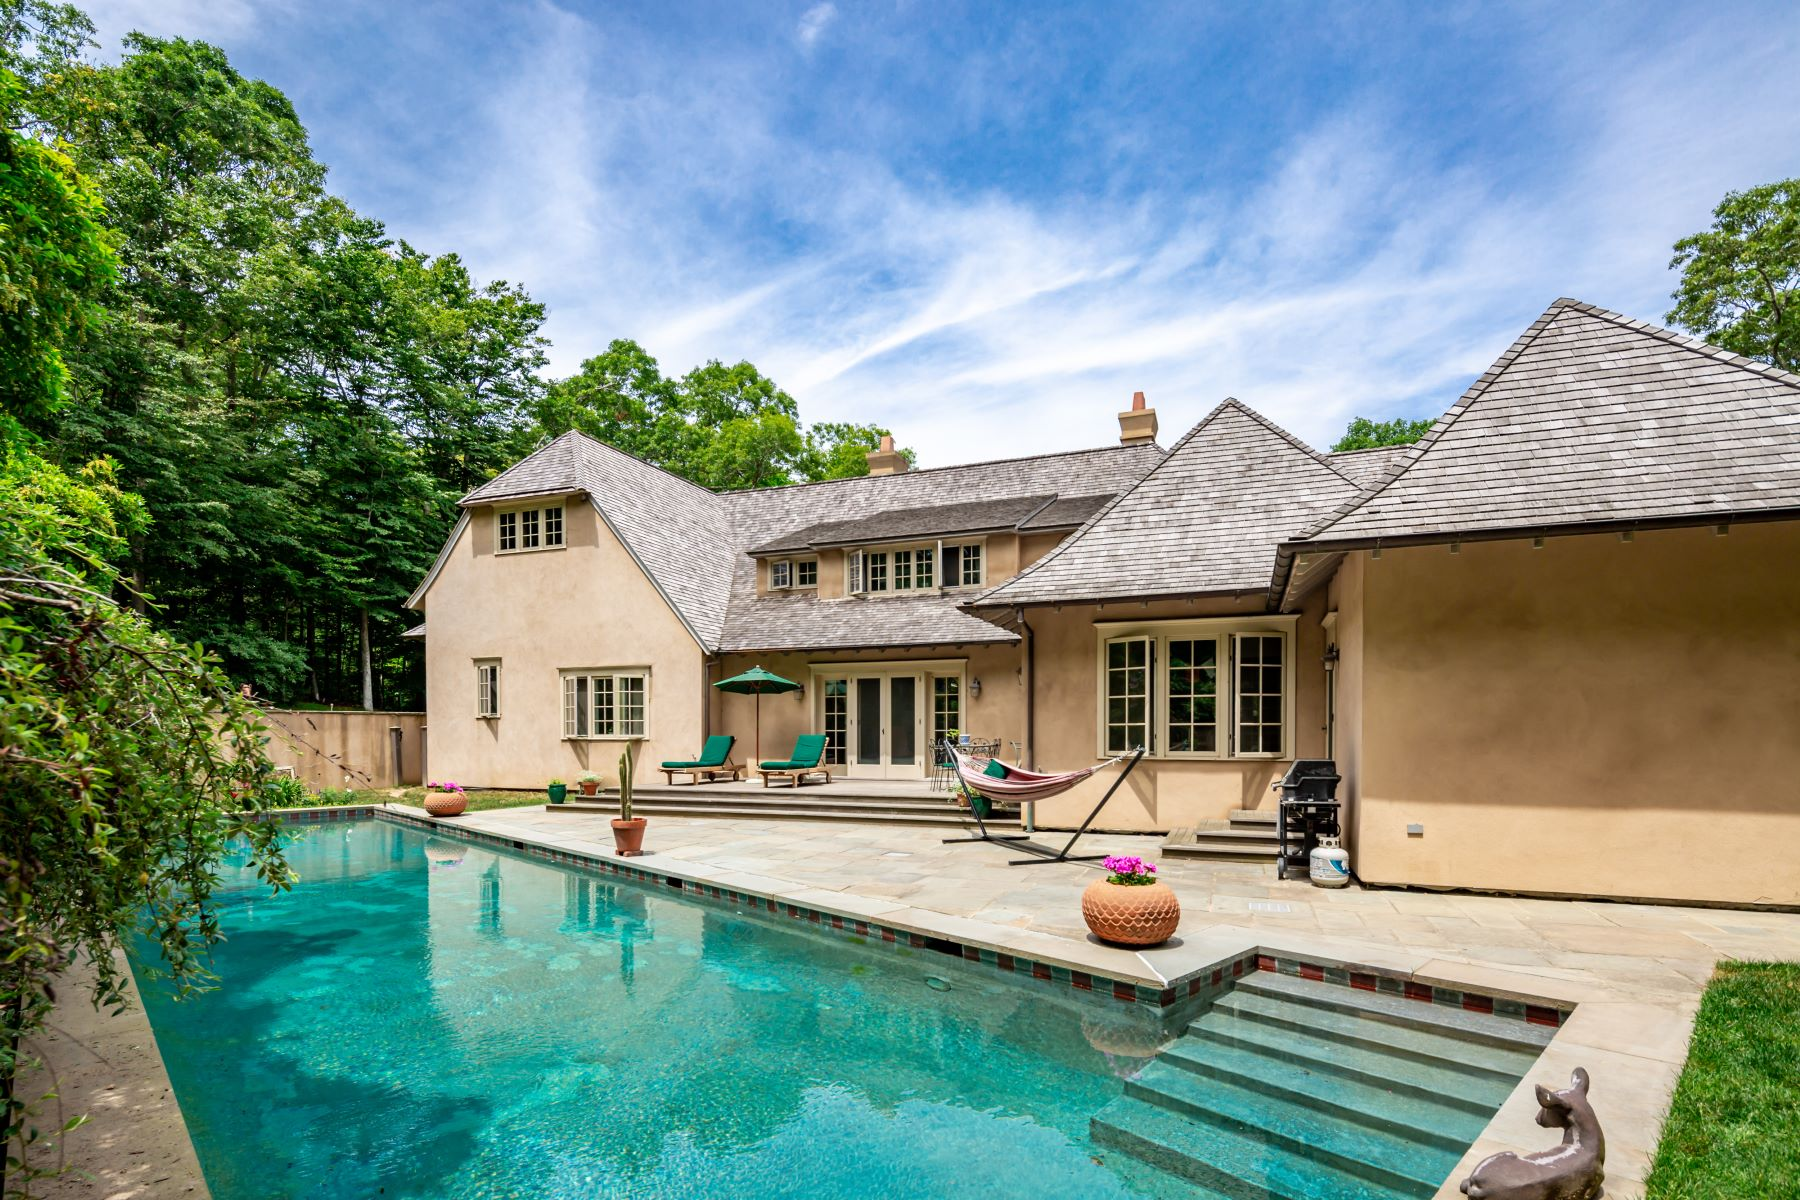 Single Family Homes for Sale at Amagansett Traditional On 2.5 Acres 100 Stony Hill Road Amagansett, New York 11930 United States